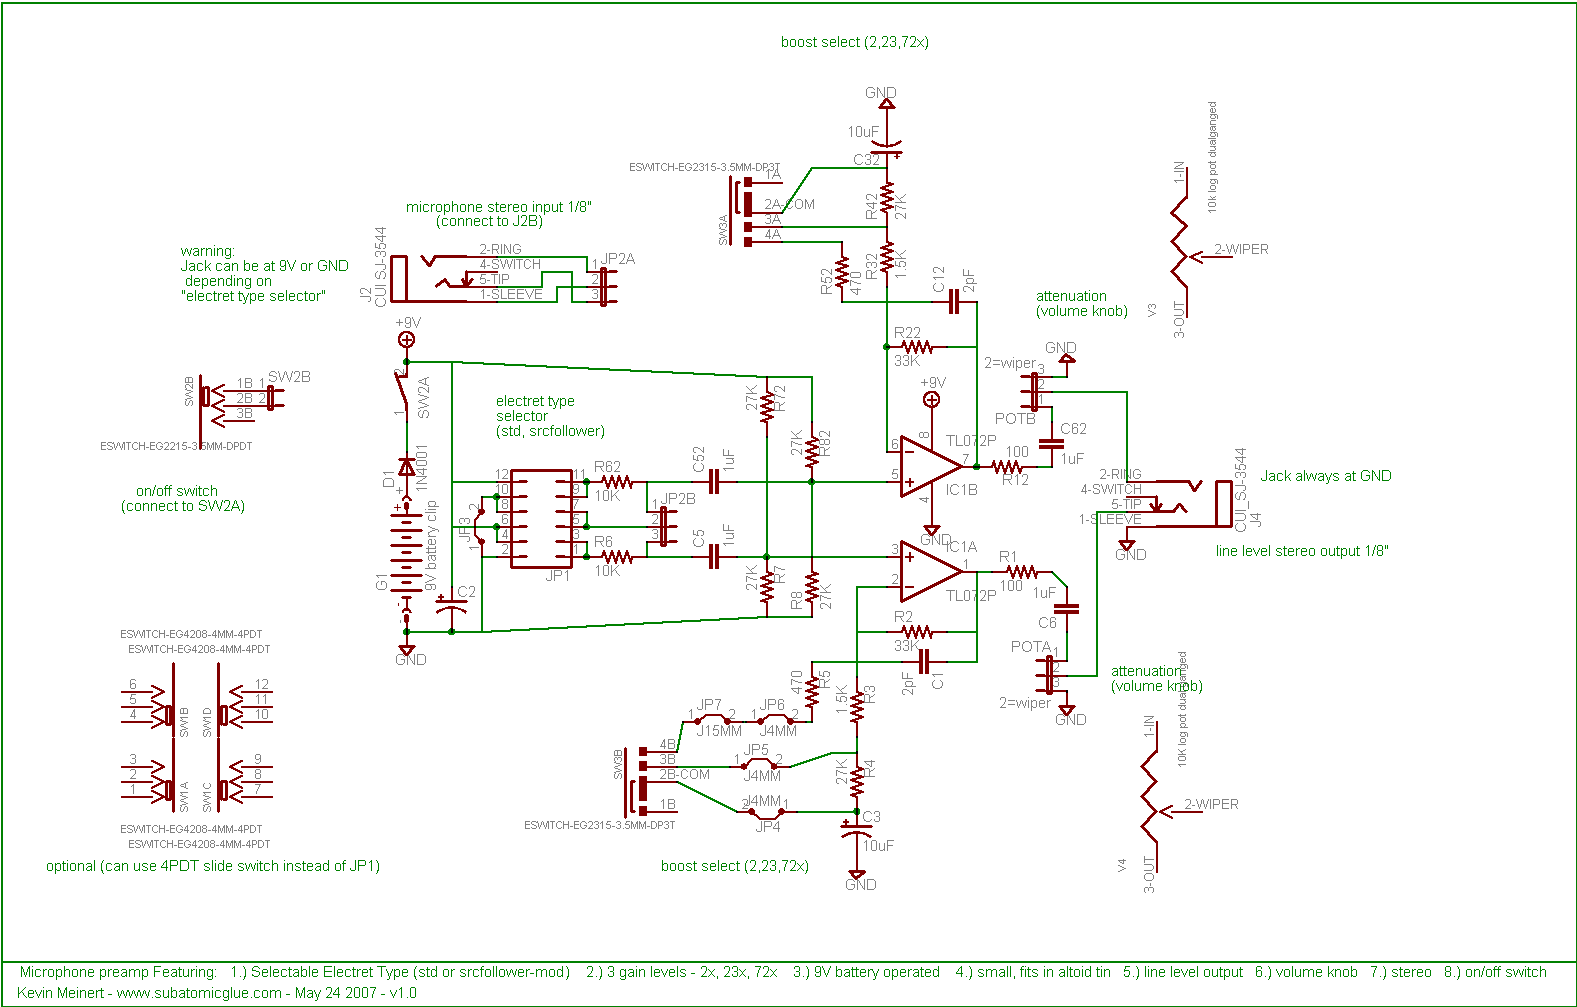 Subatomicglue Mintymic Work Log Re Need A Simple Low Power Preamp Circuit For Electret Microphone Schematic And Single Sided Pcb Layout 25 X 215 Inches 300dpi